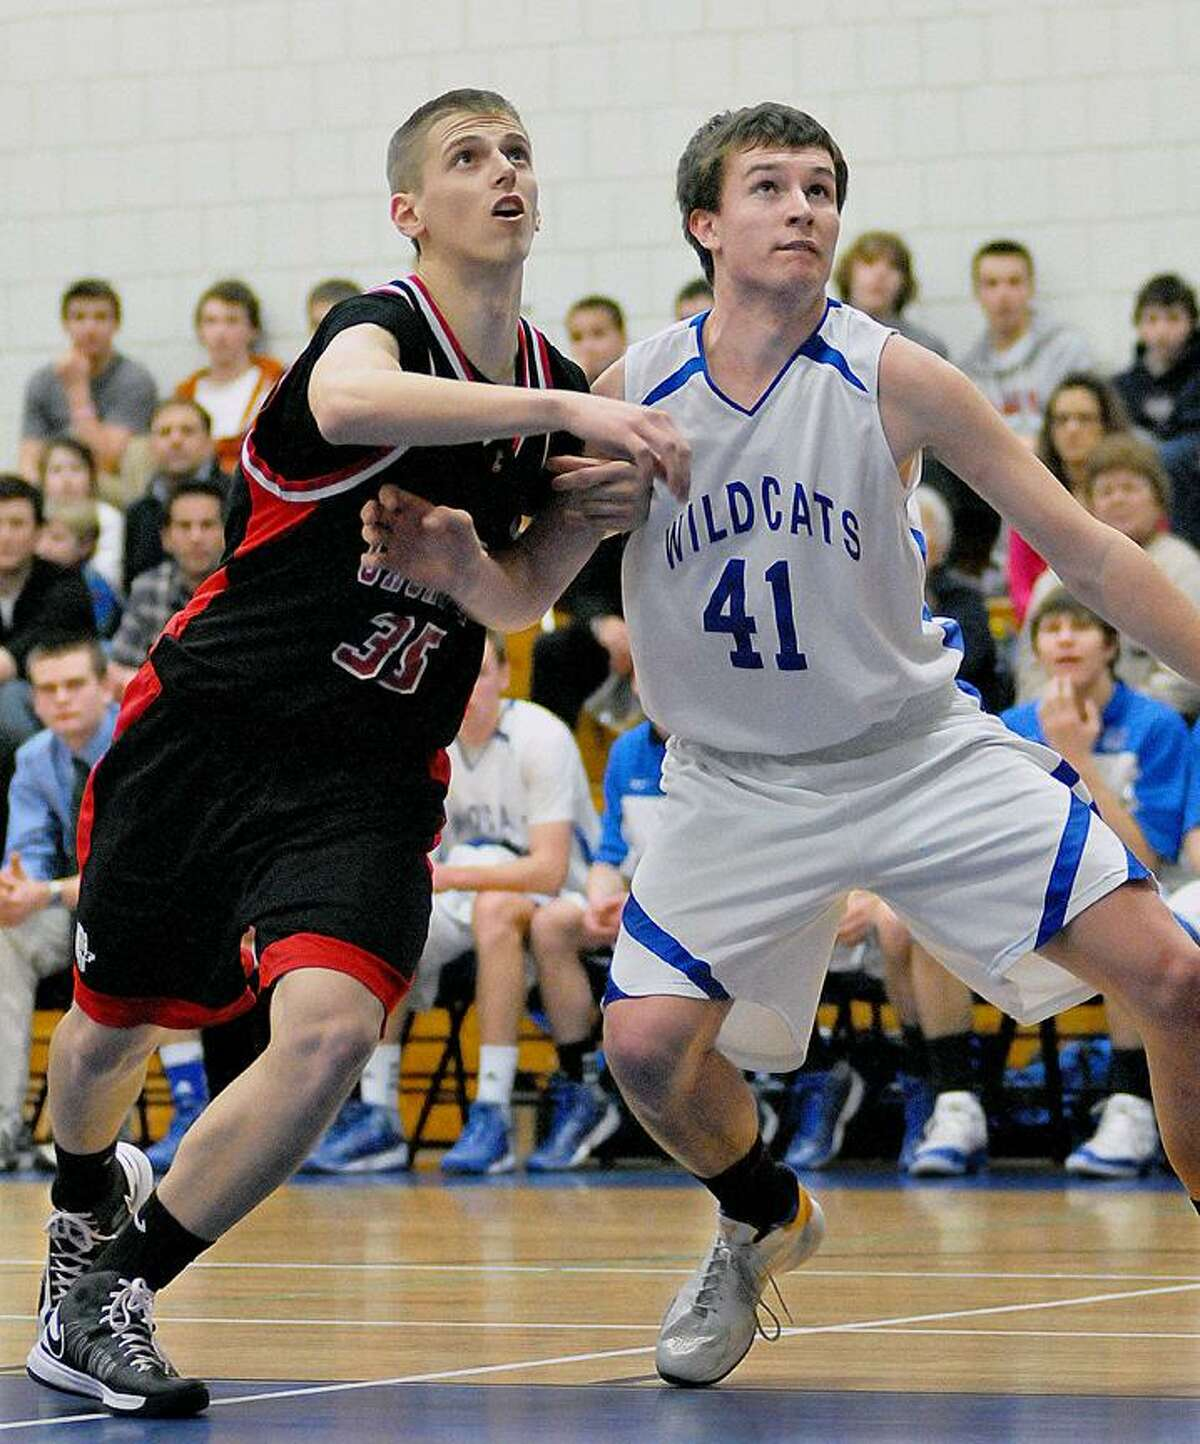 Catherine Avalone/The Middletown Press Cromwell senior forward Ael Cecunjanin battles Lyme-Old Lyme sophomore center Liam Corrigan in the paint Tuesday night. The Lyme-Old Lyme Wildcats defeated Cromwell Panthers 56-46 in the Shoreline Semi-Final game in Old Lyme.